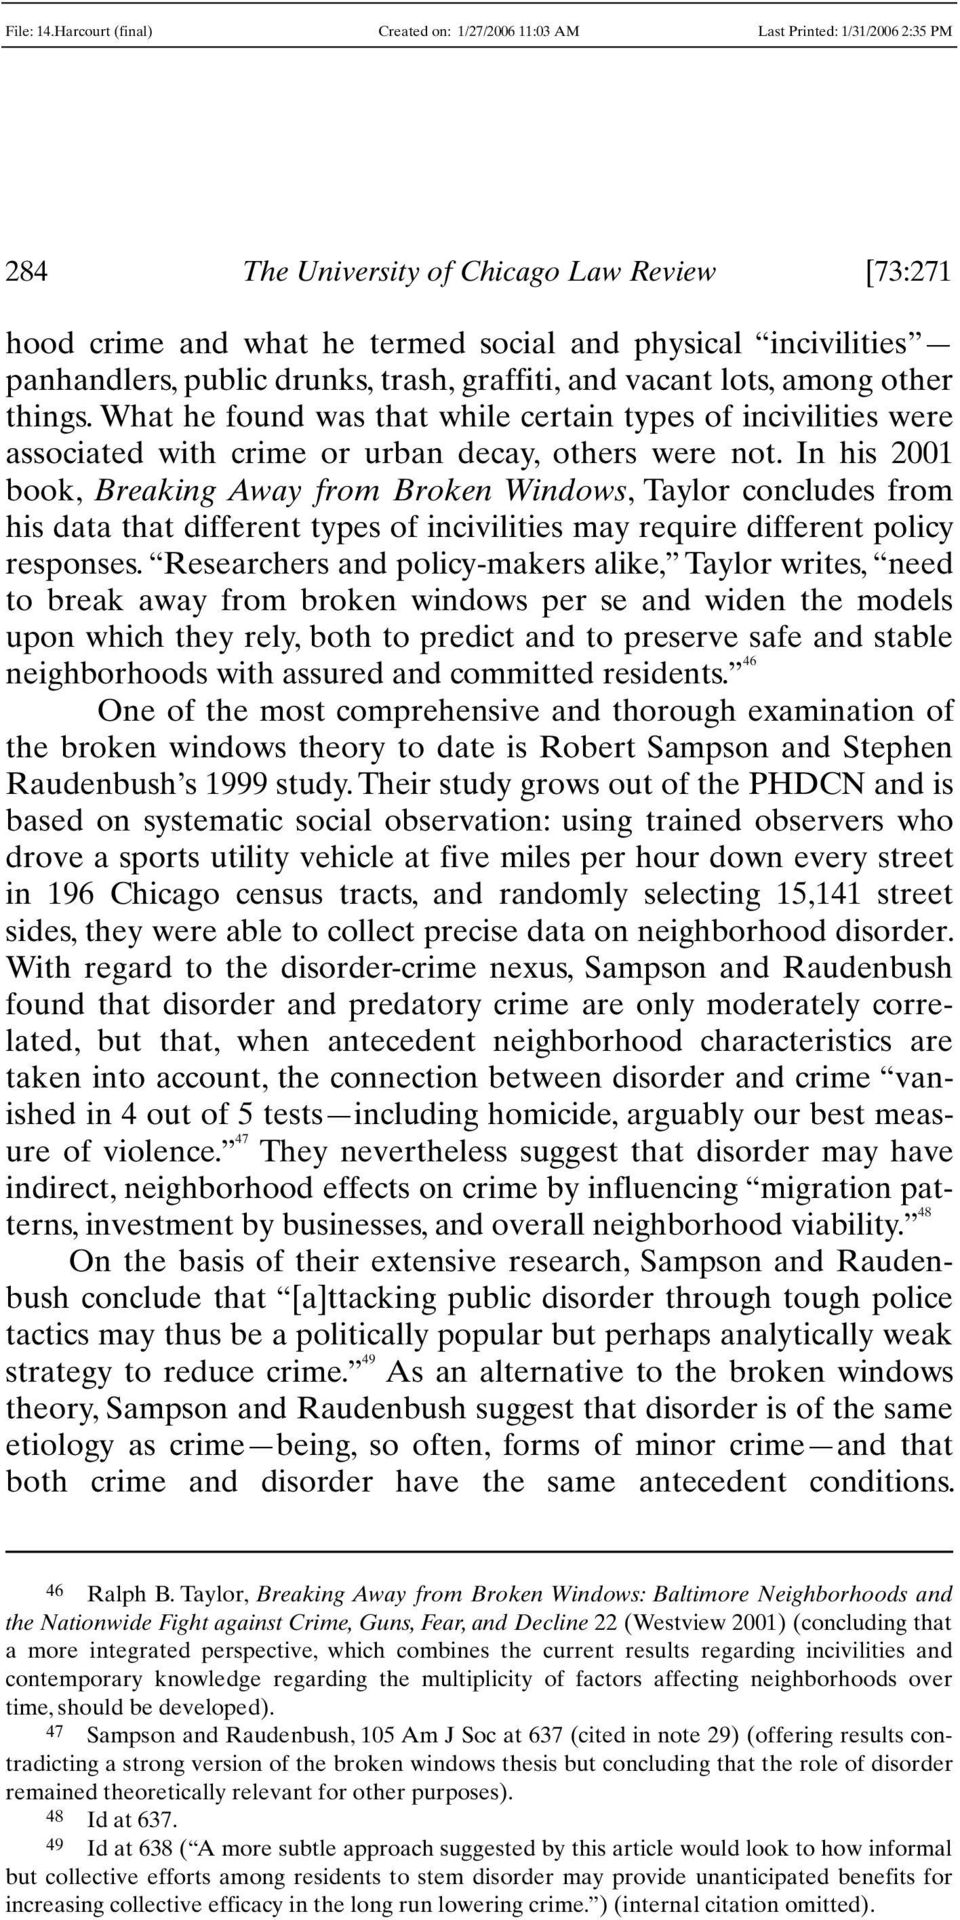 In his 2001 book, Breaking Away from Broken Windows, Taylor concludes from his data that different types of incivilities may require different policy responses.